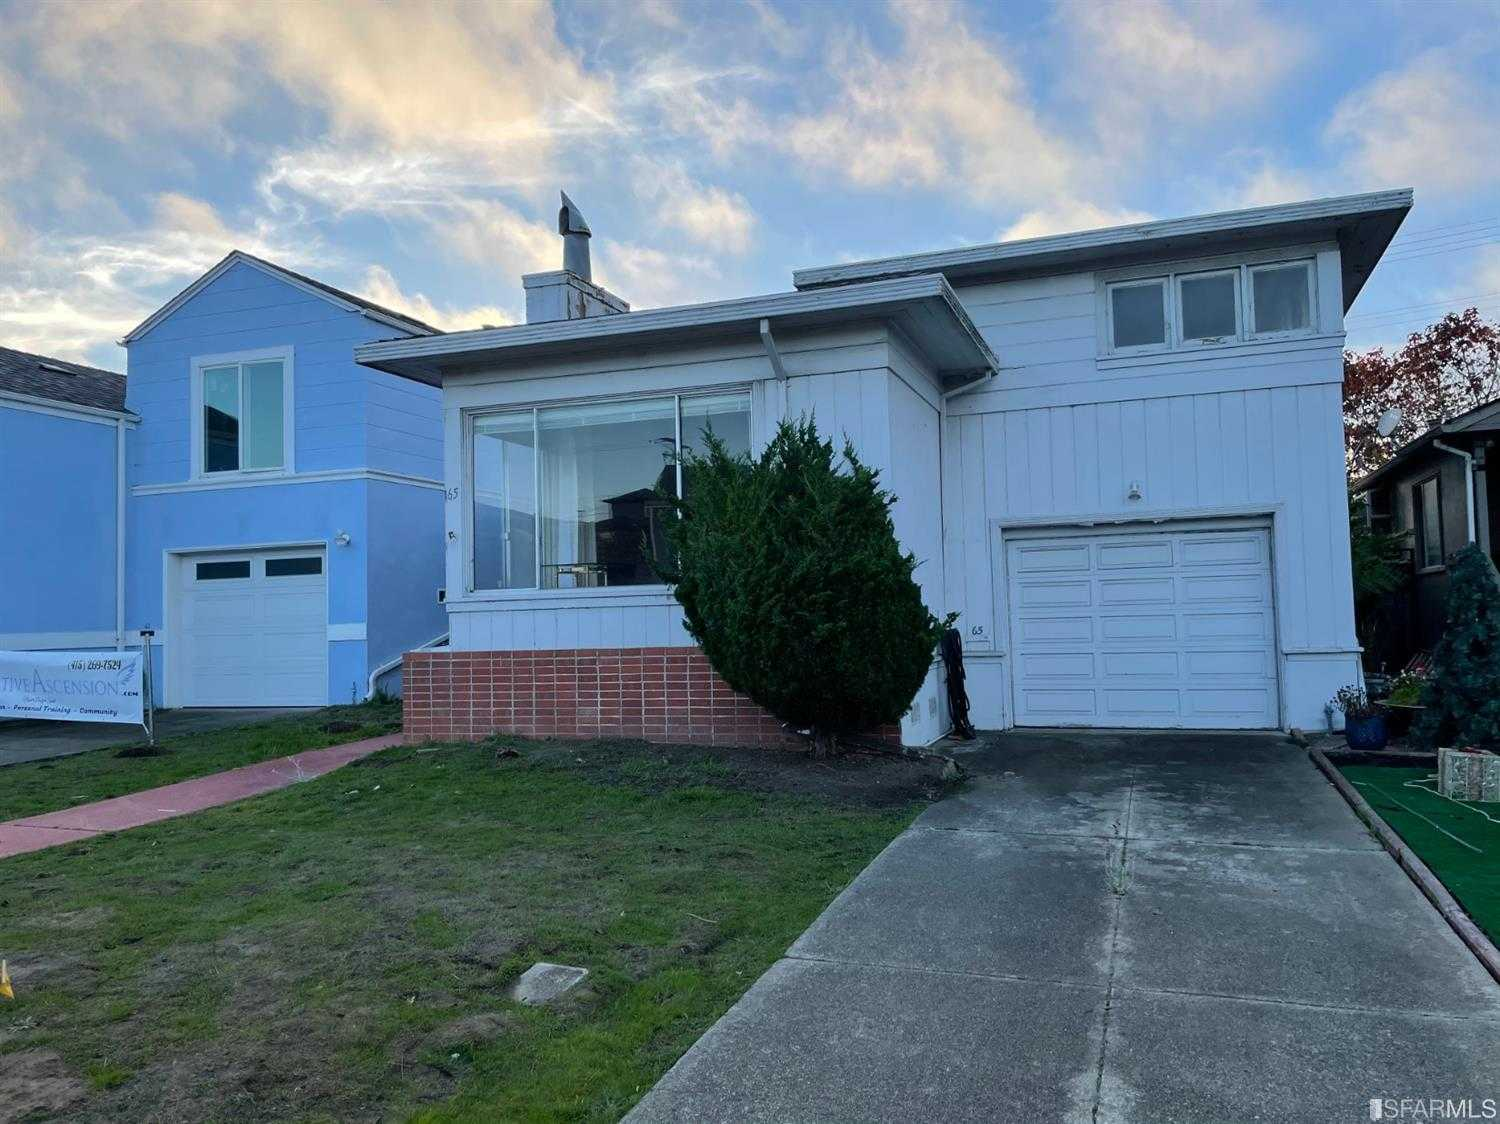 $860,000 - 2Br/1Ba -  for Sale in Daly City